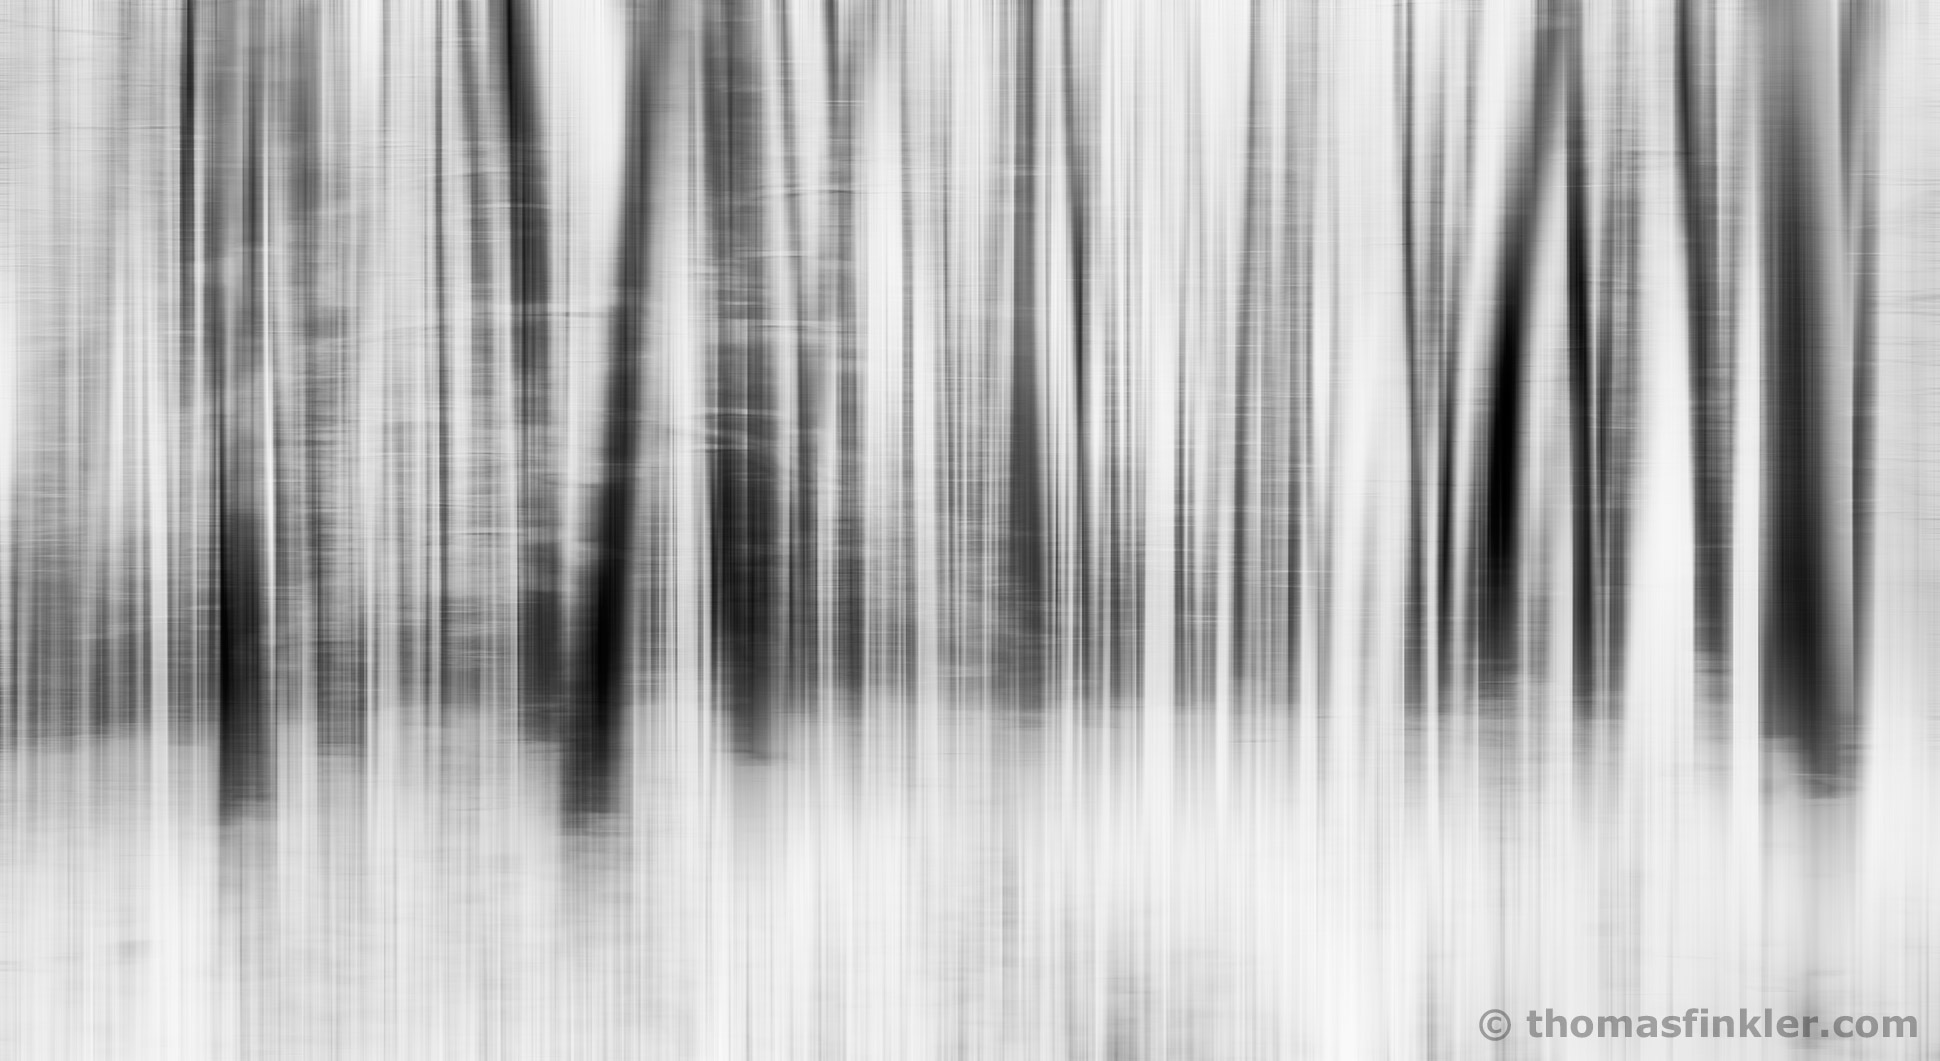 Thomas Finkler Photography, fine art nature photography, late summer, blurry trees, light show, colorful, poetic, abstract